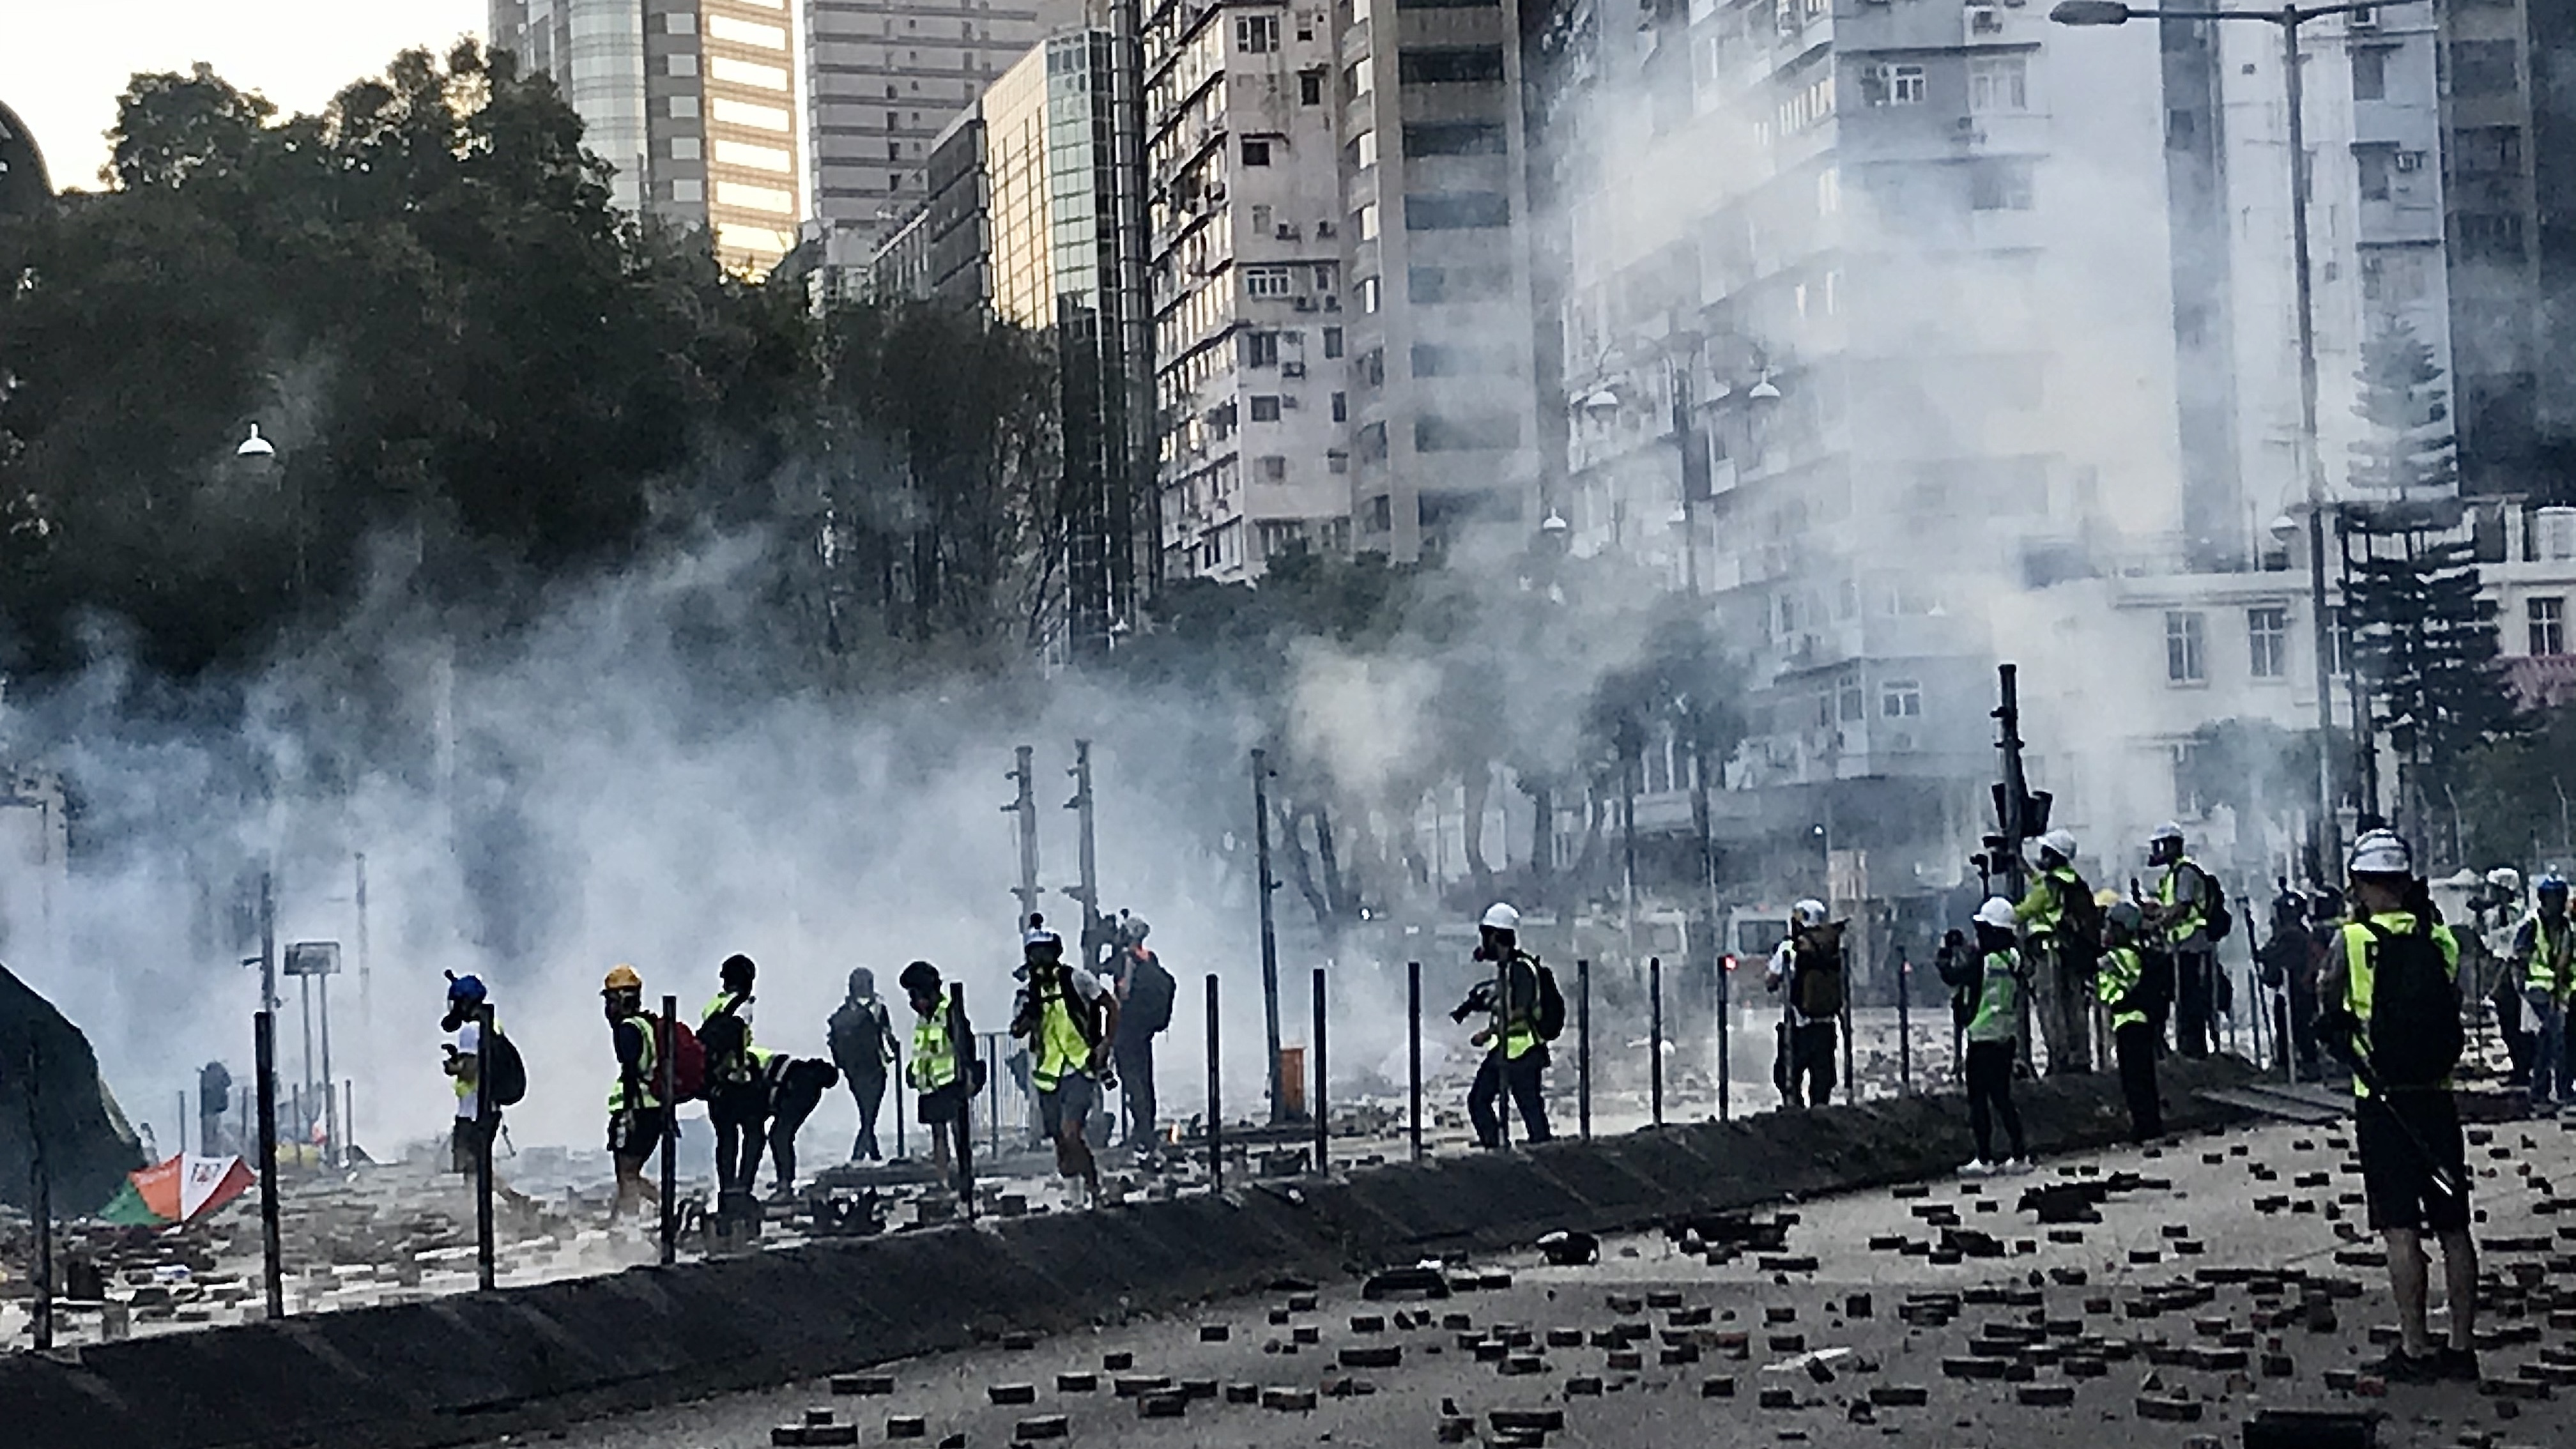 journalists-getting-caught-in-between-the-frontline-protesters-and-hong-kong-police-as-canisters-of-teargas-are-fired_wide-895a3070102138b481b092a4bd4b54d8c6ed69e9.jpg